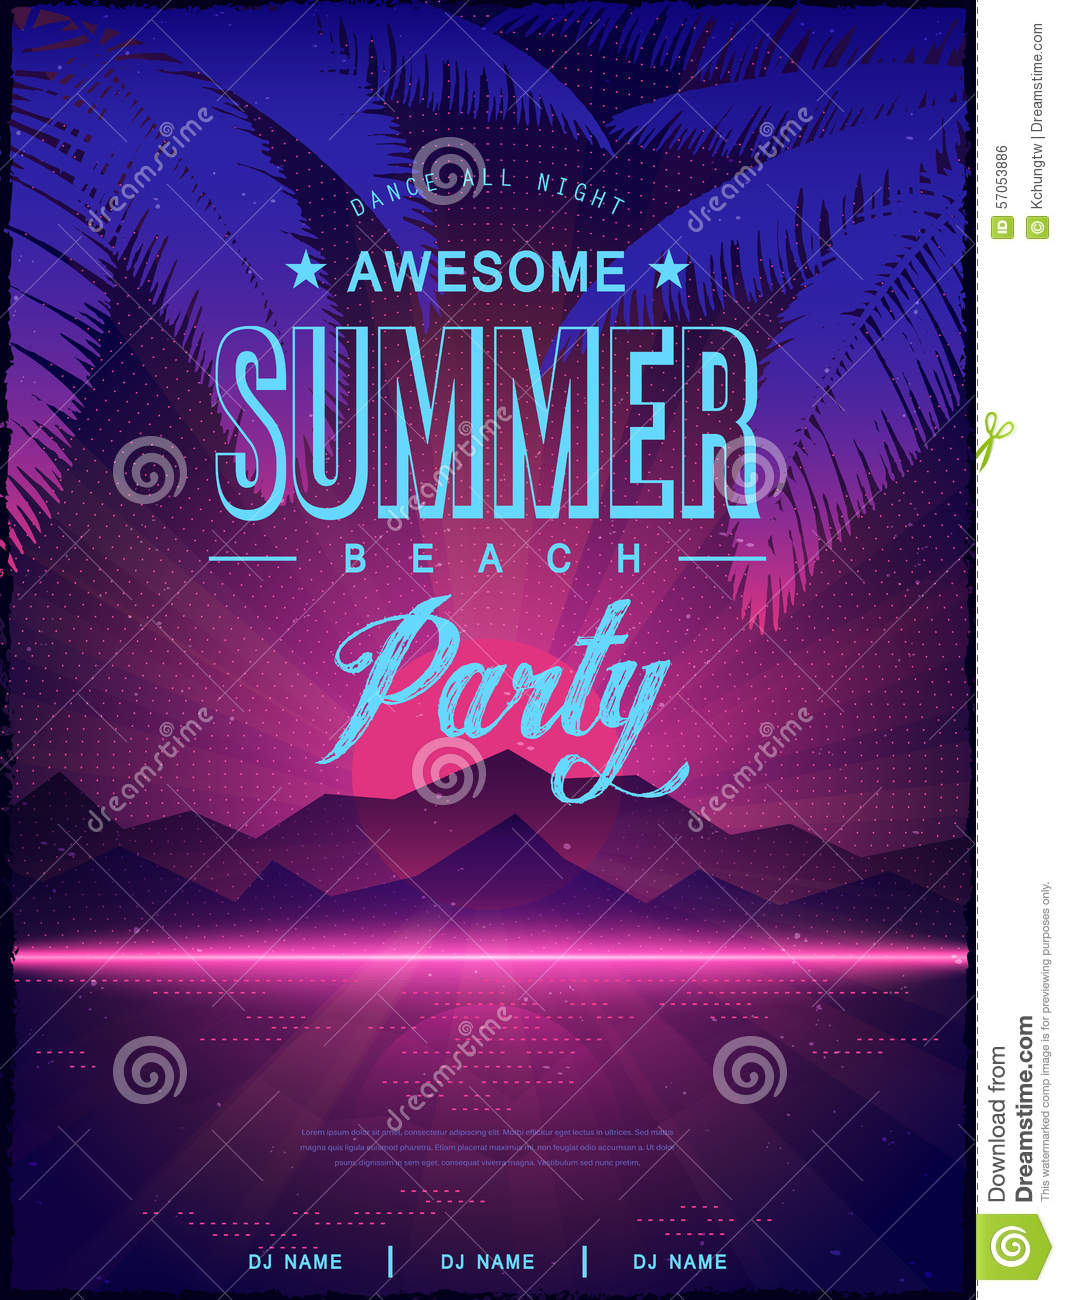 awesome summer beach party poster design stock vector illustration